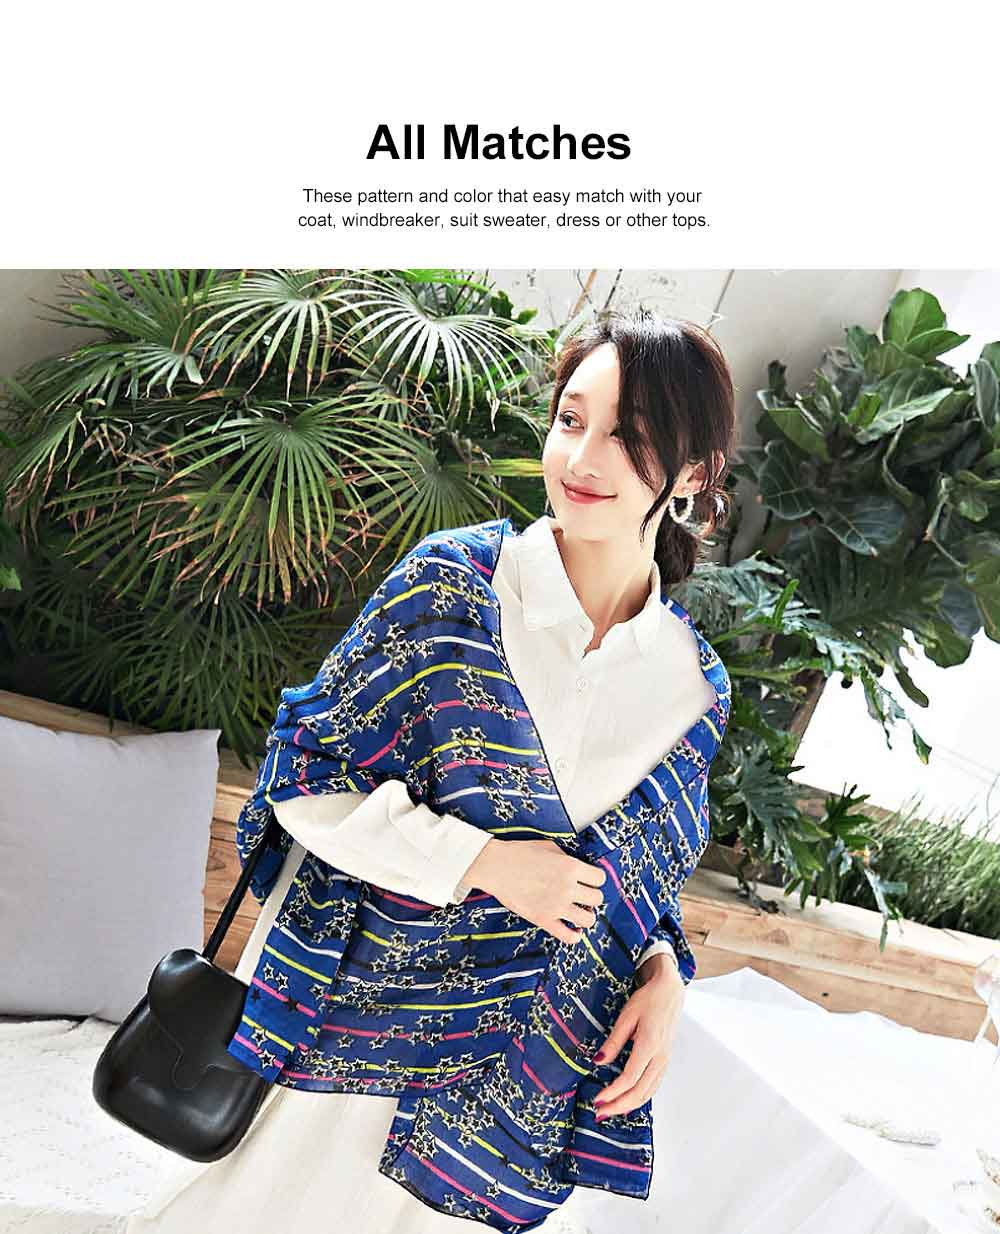 Women Cotton Linen Scarves Wild Print Sunscreen Beach Cover-up Shawl Fashion Accessories Best Gifts for women 1